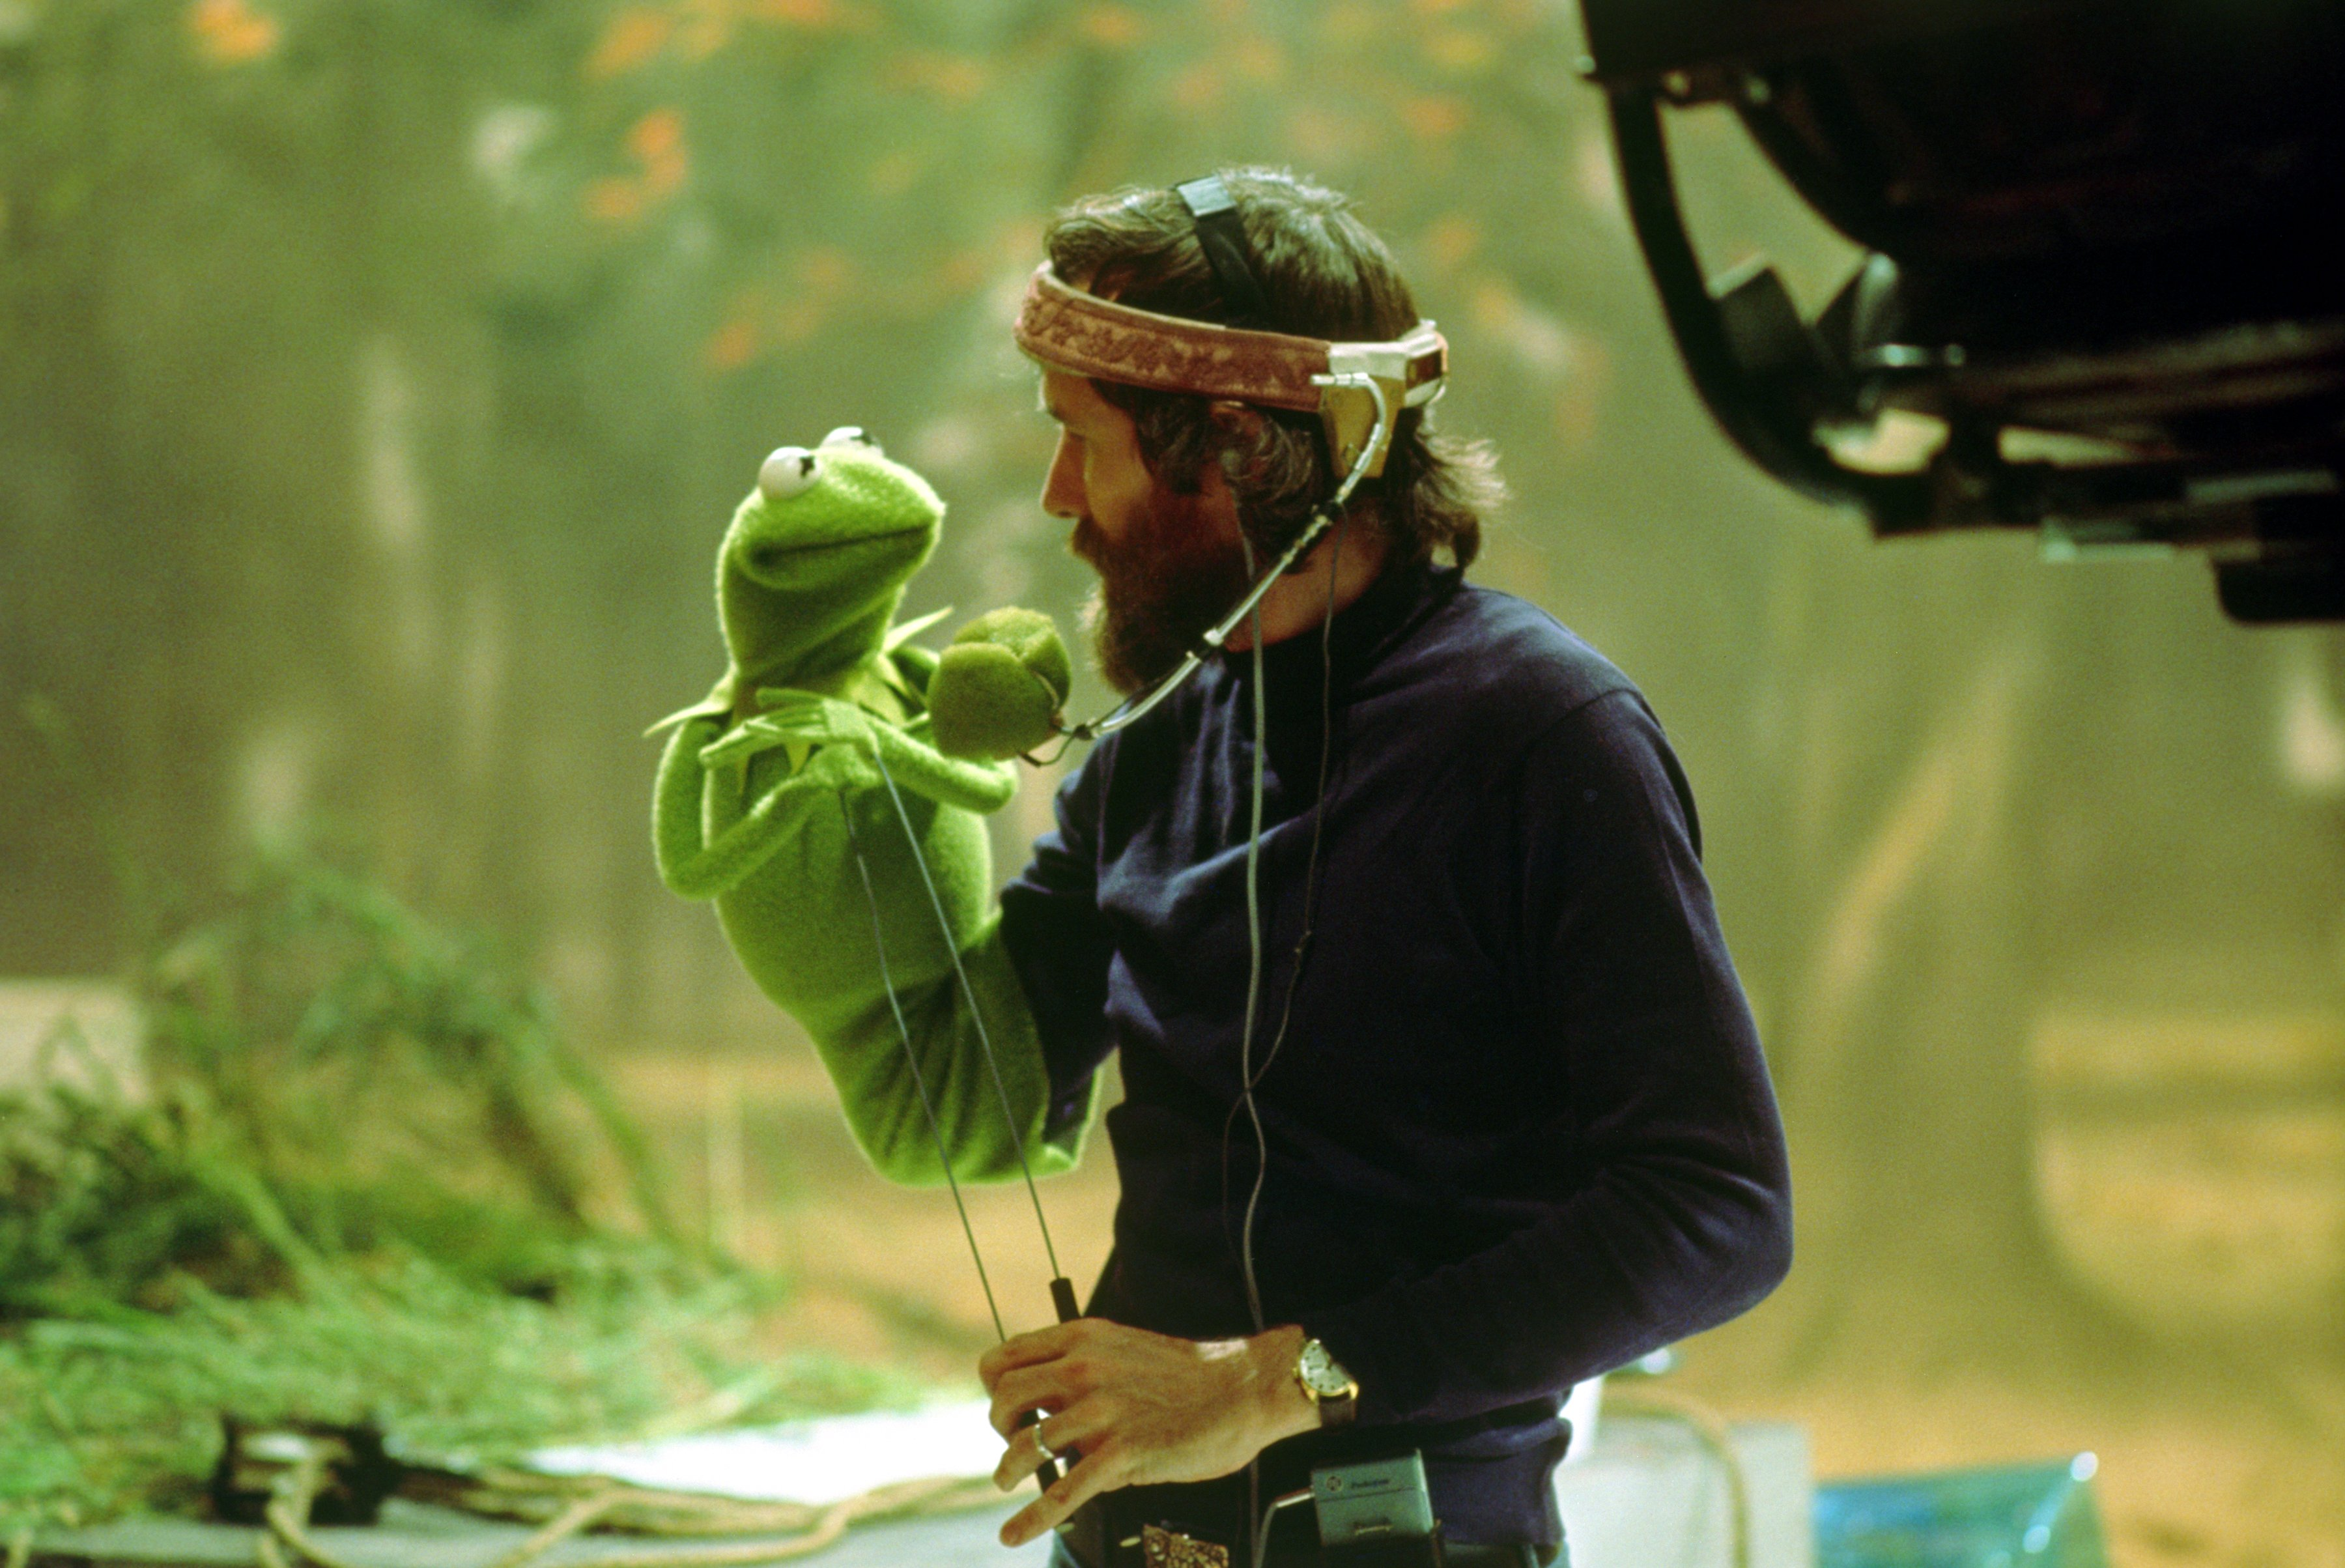 Because this is the Jim and Kermit picture we use.